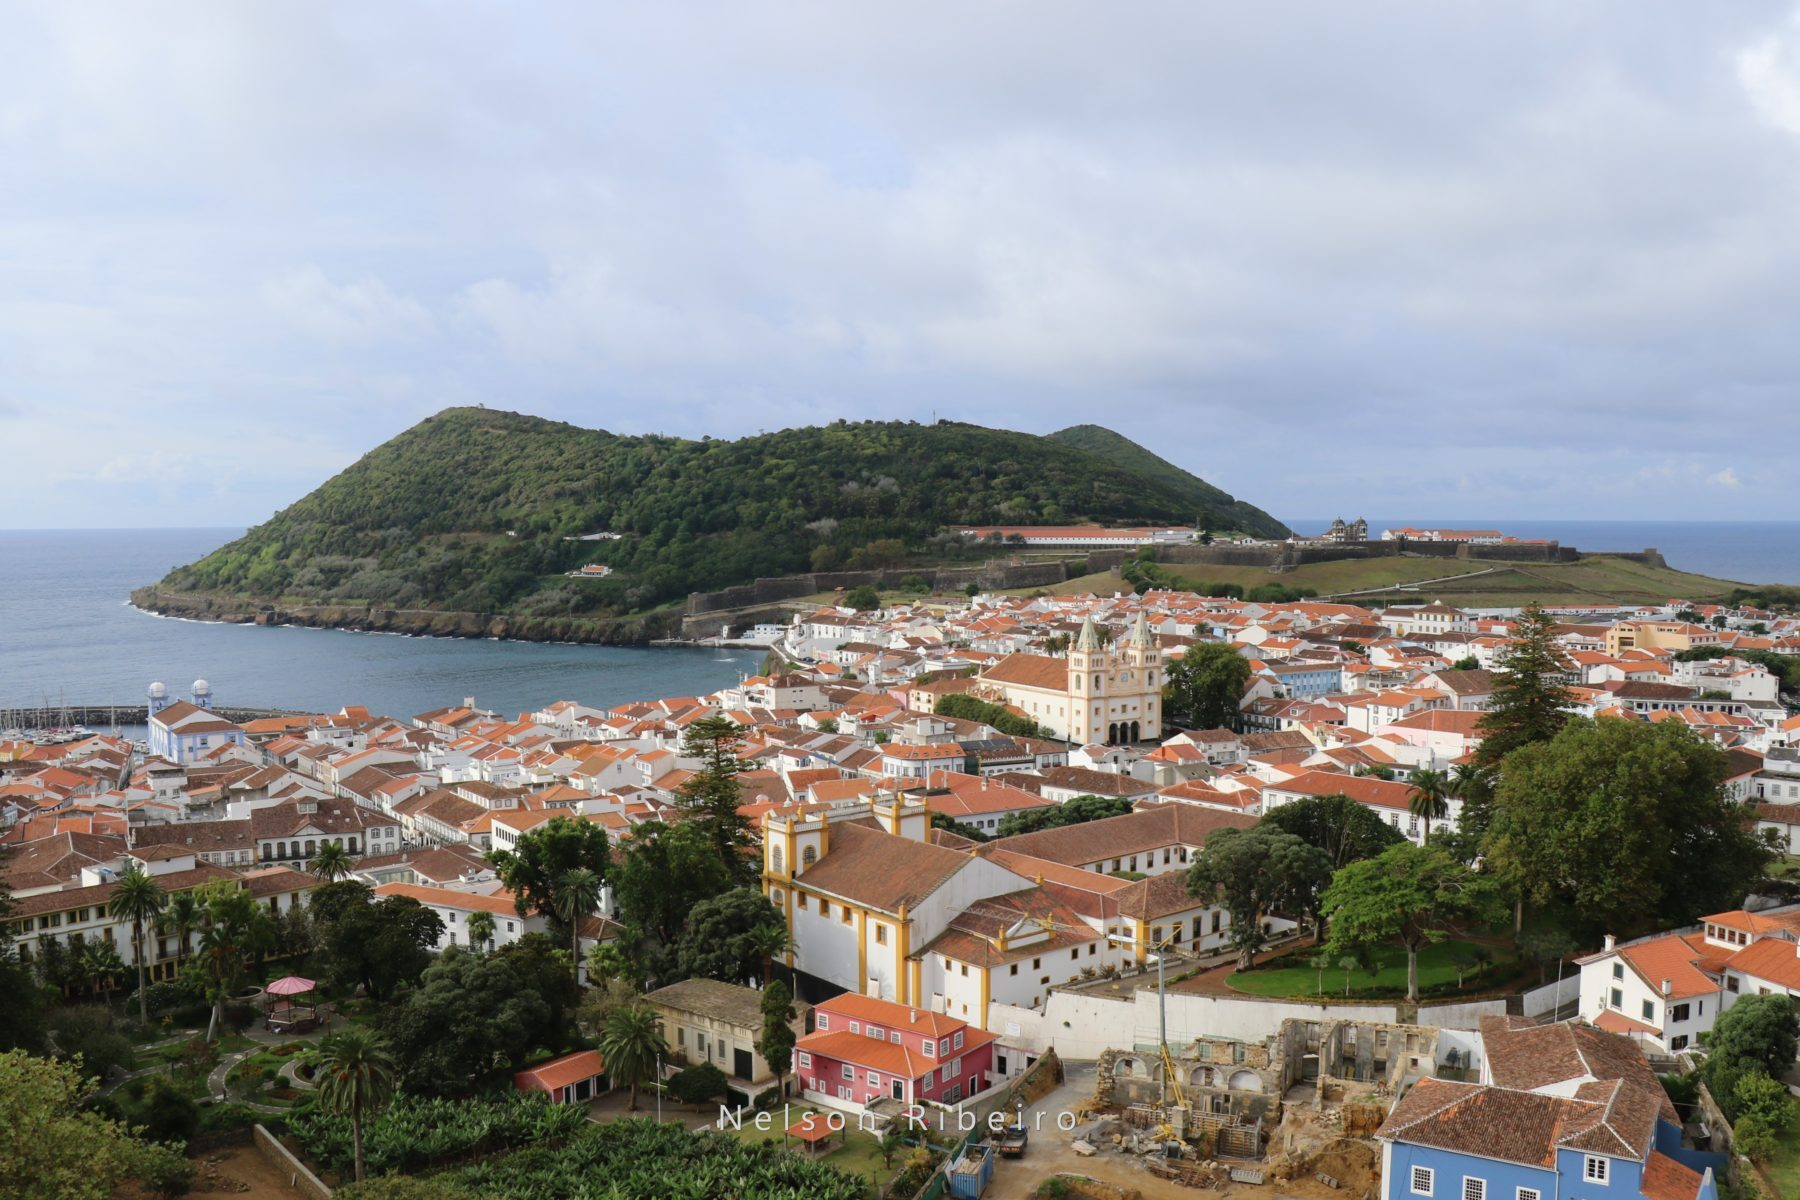 Angra do Heroísmo